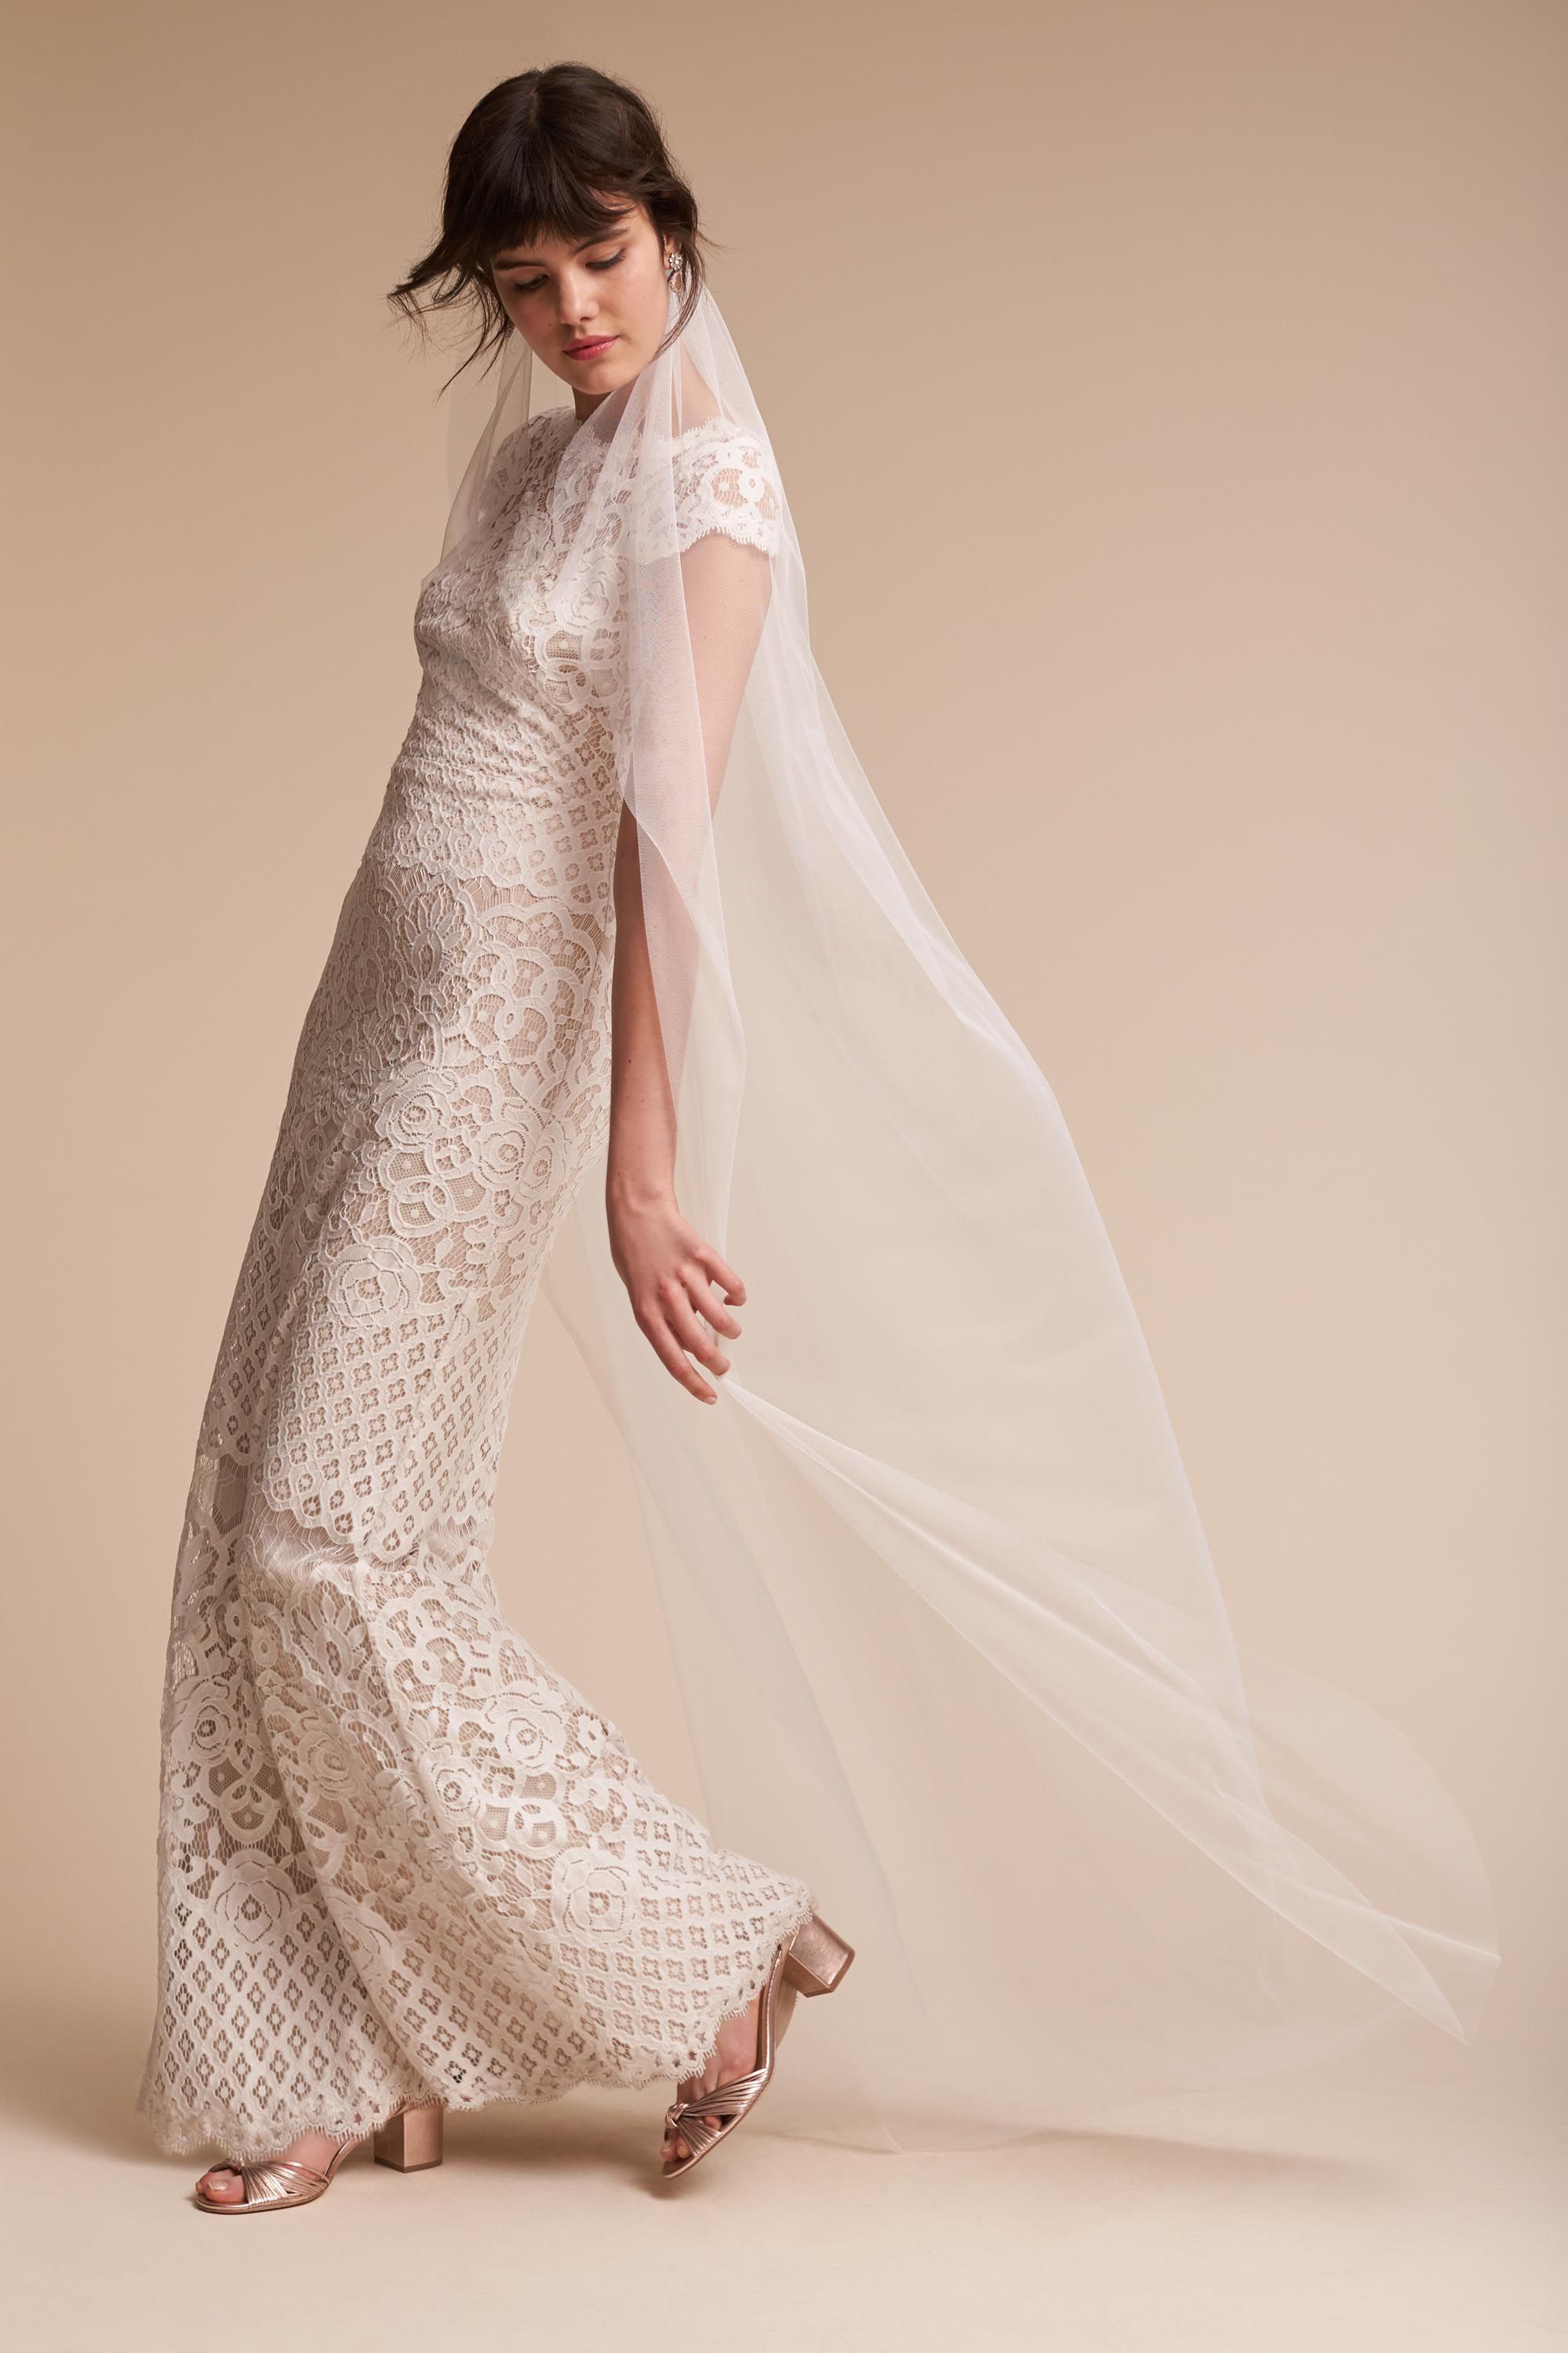 Shadow Light Veil (With images) Wedding dress